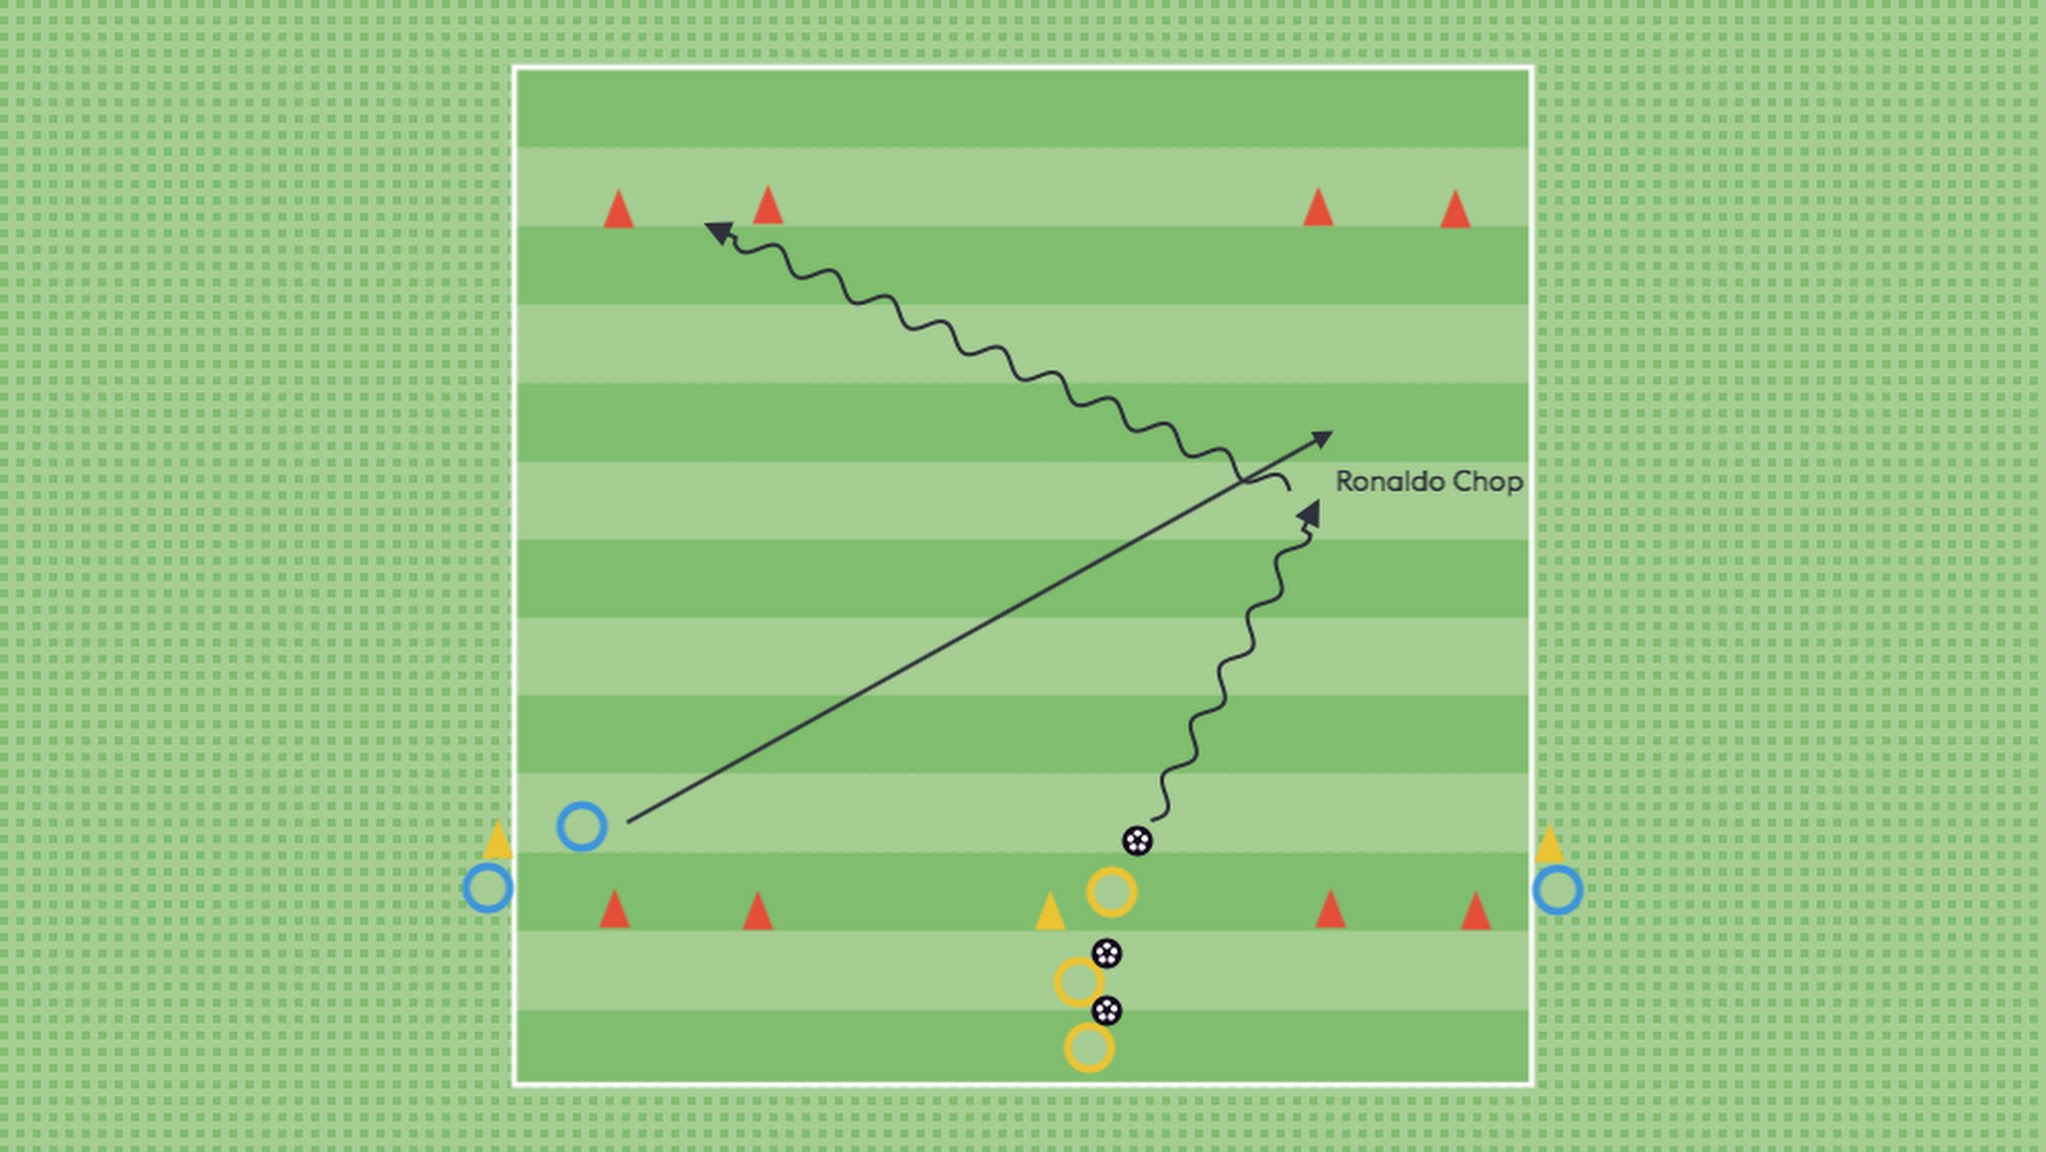 WHOLE - Players now have a move they can use ('Inside Cut'), though they can still experiment and come up with their own solutions. The player above tries a move that chops the ball behind his standing foot instead (similar to the 'Ronaldo Chop')